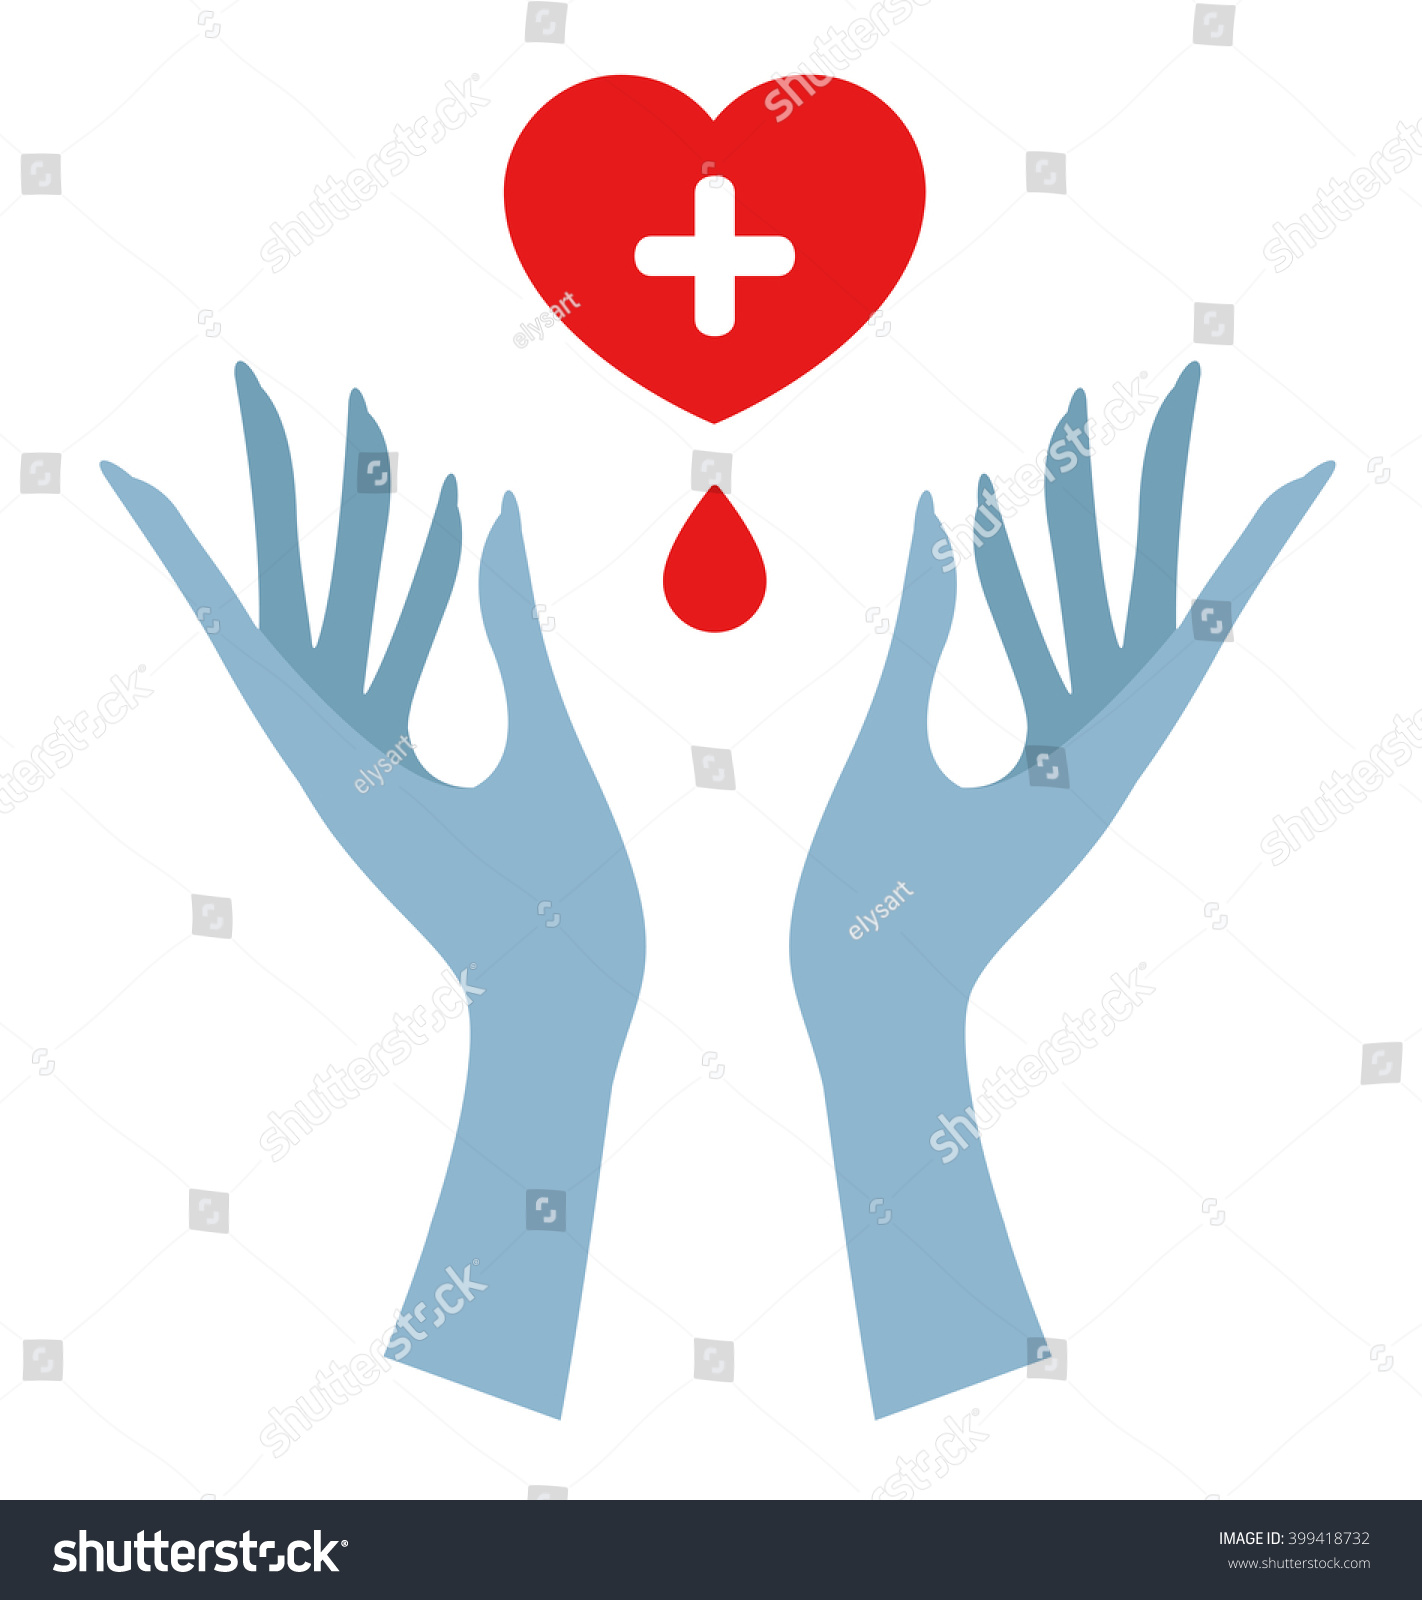 Blood donation symbol two hands stock vector 399418732 shutterstock blood donation symbol with two hands buycottarizona